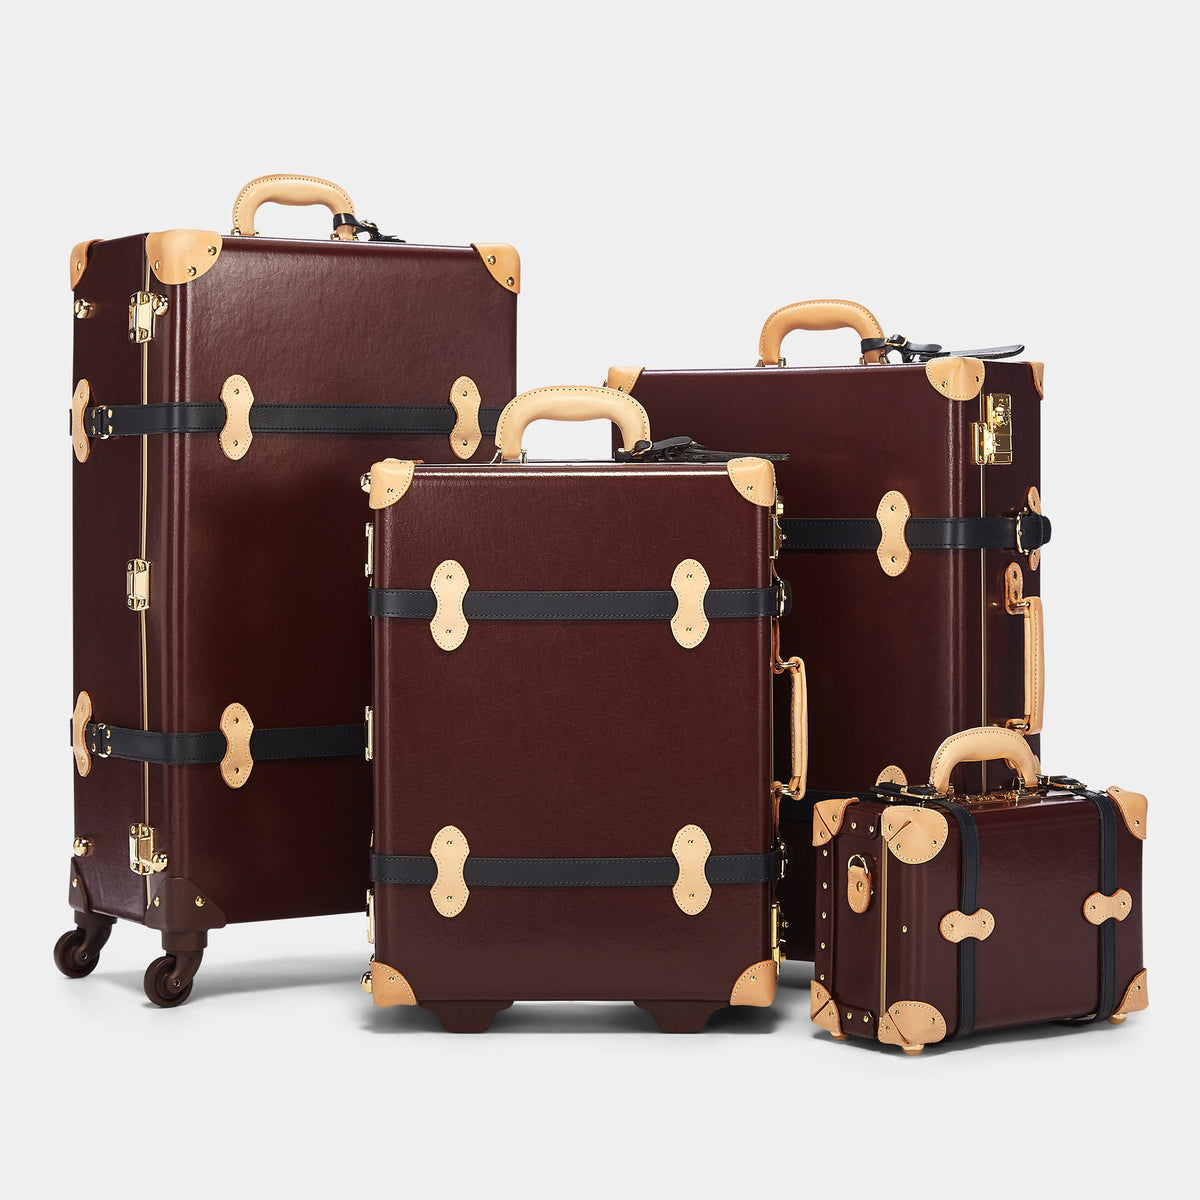 The Architect Stowaway in Burgundy - Vintage Style Leather Case - Alongside matching cases from The Architect Burgundy collection